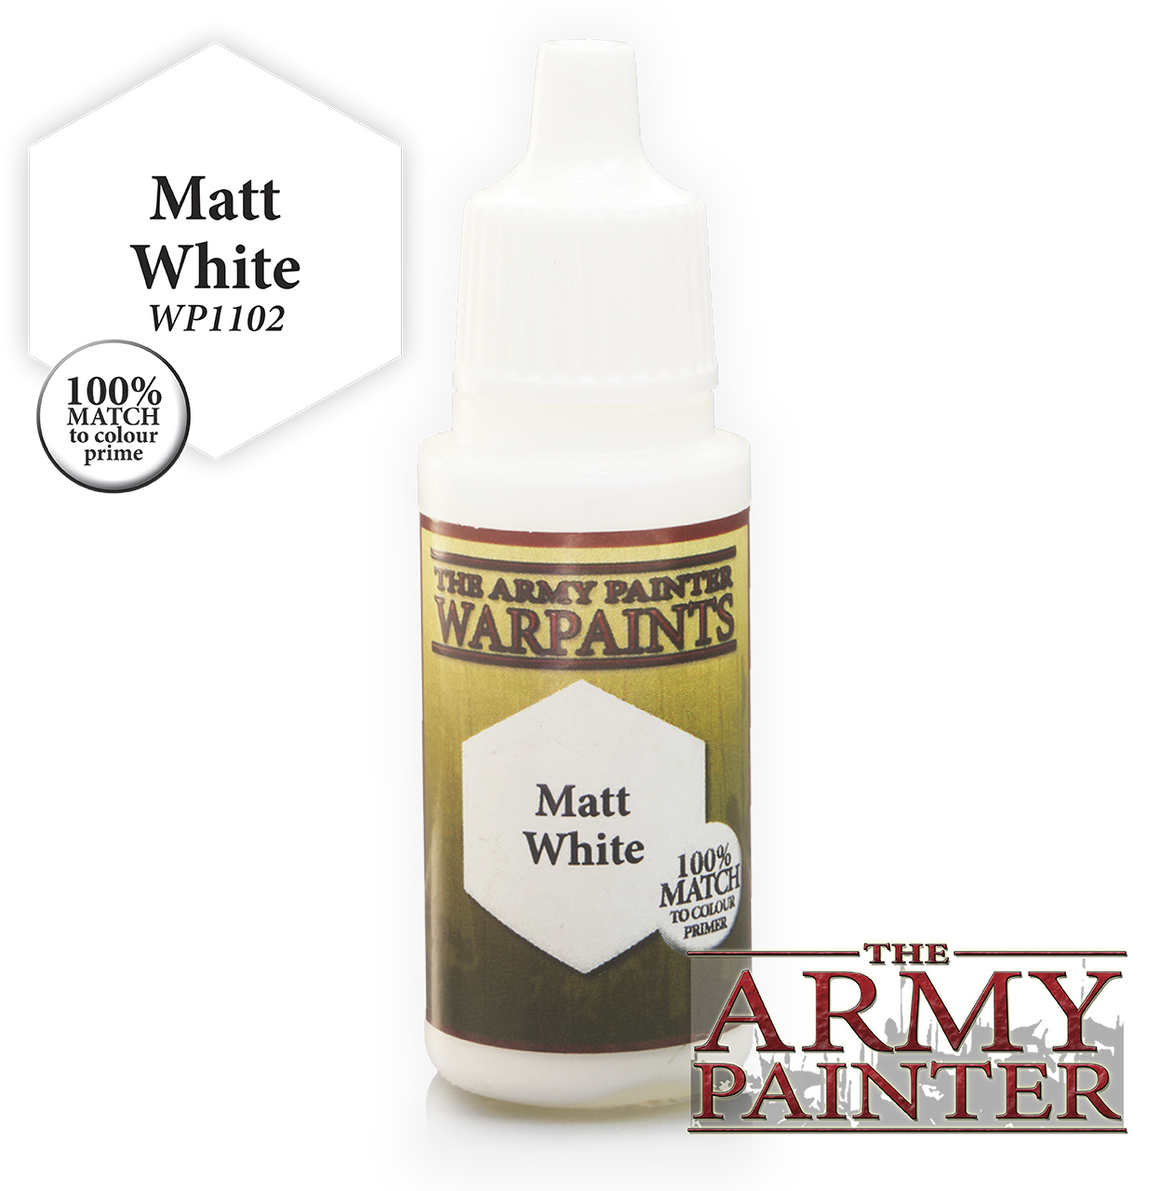 Army Painter Acrylic Warpaint - Matt White